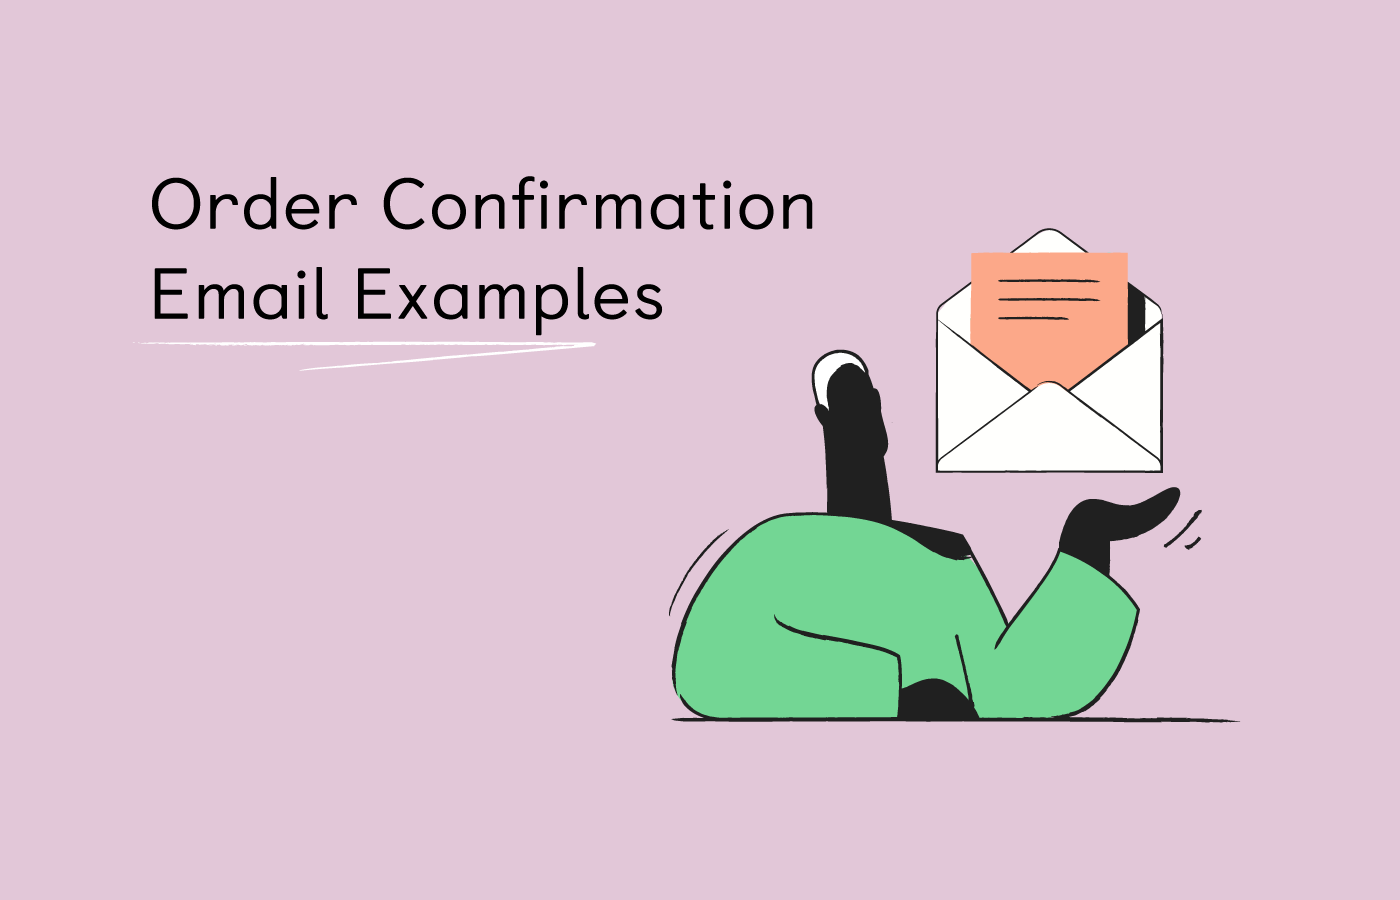 5 Best Order Confirmation Email Examples in 2021